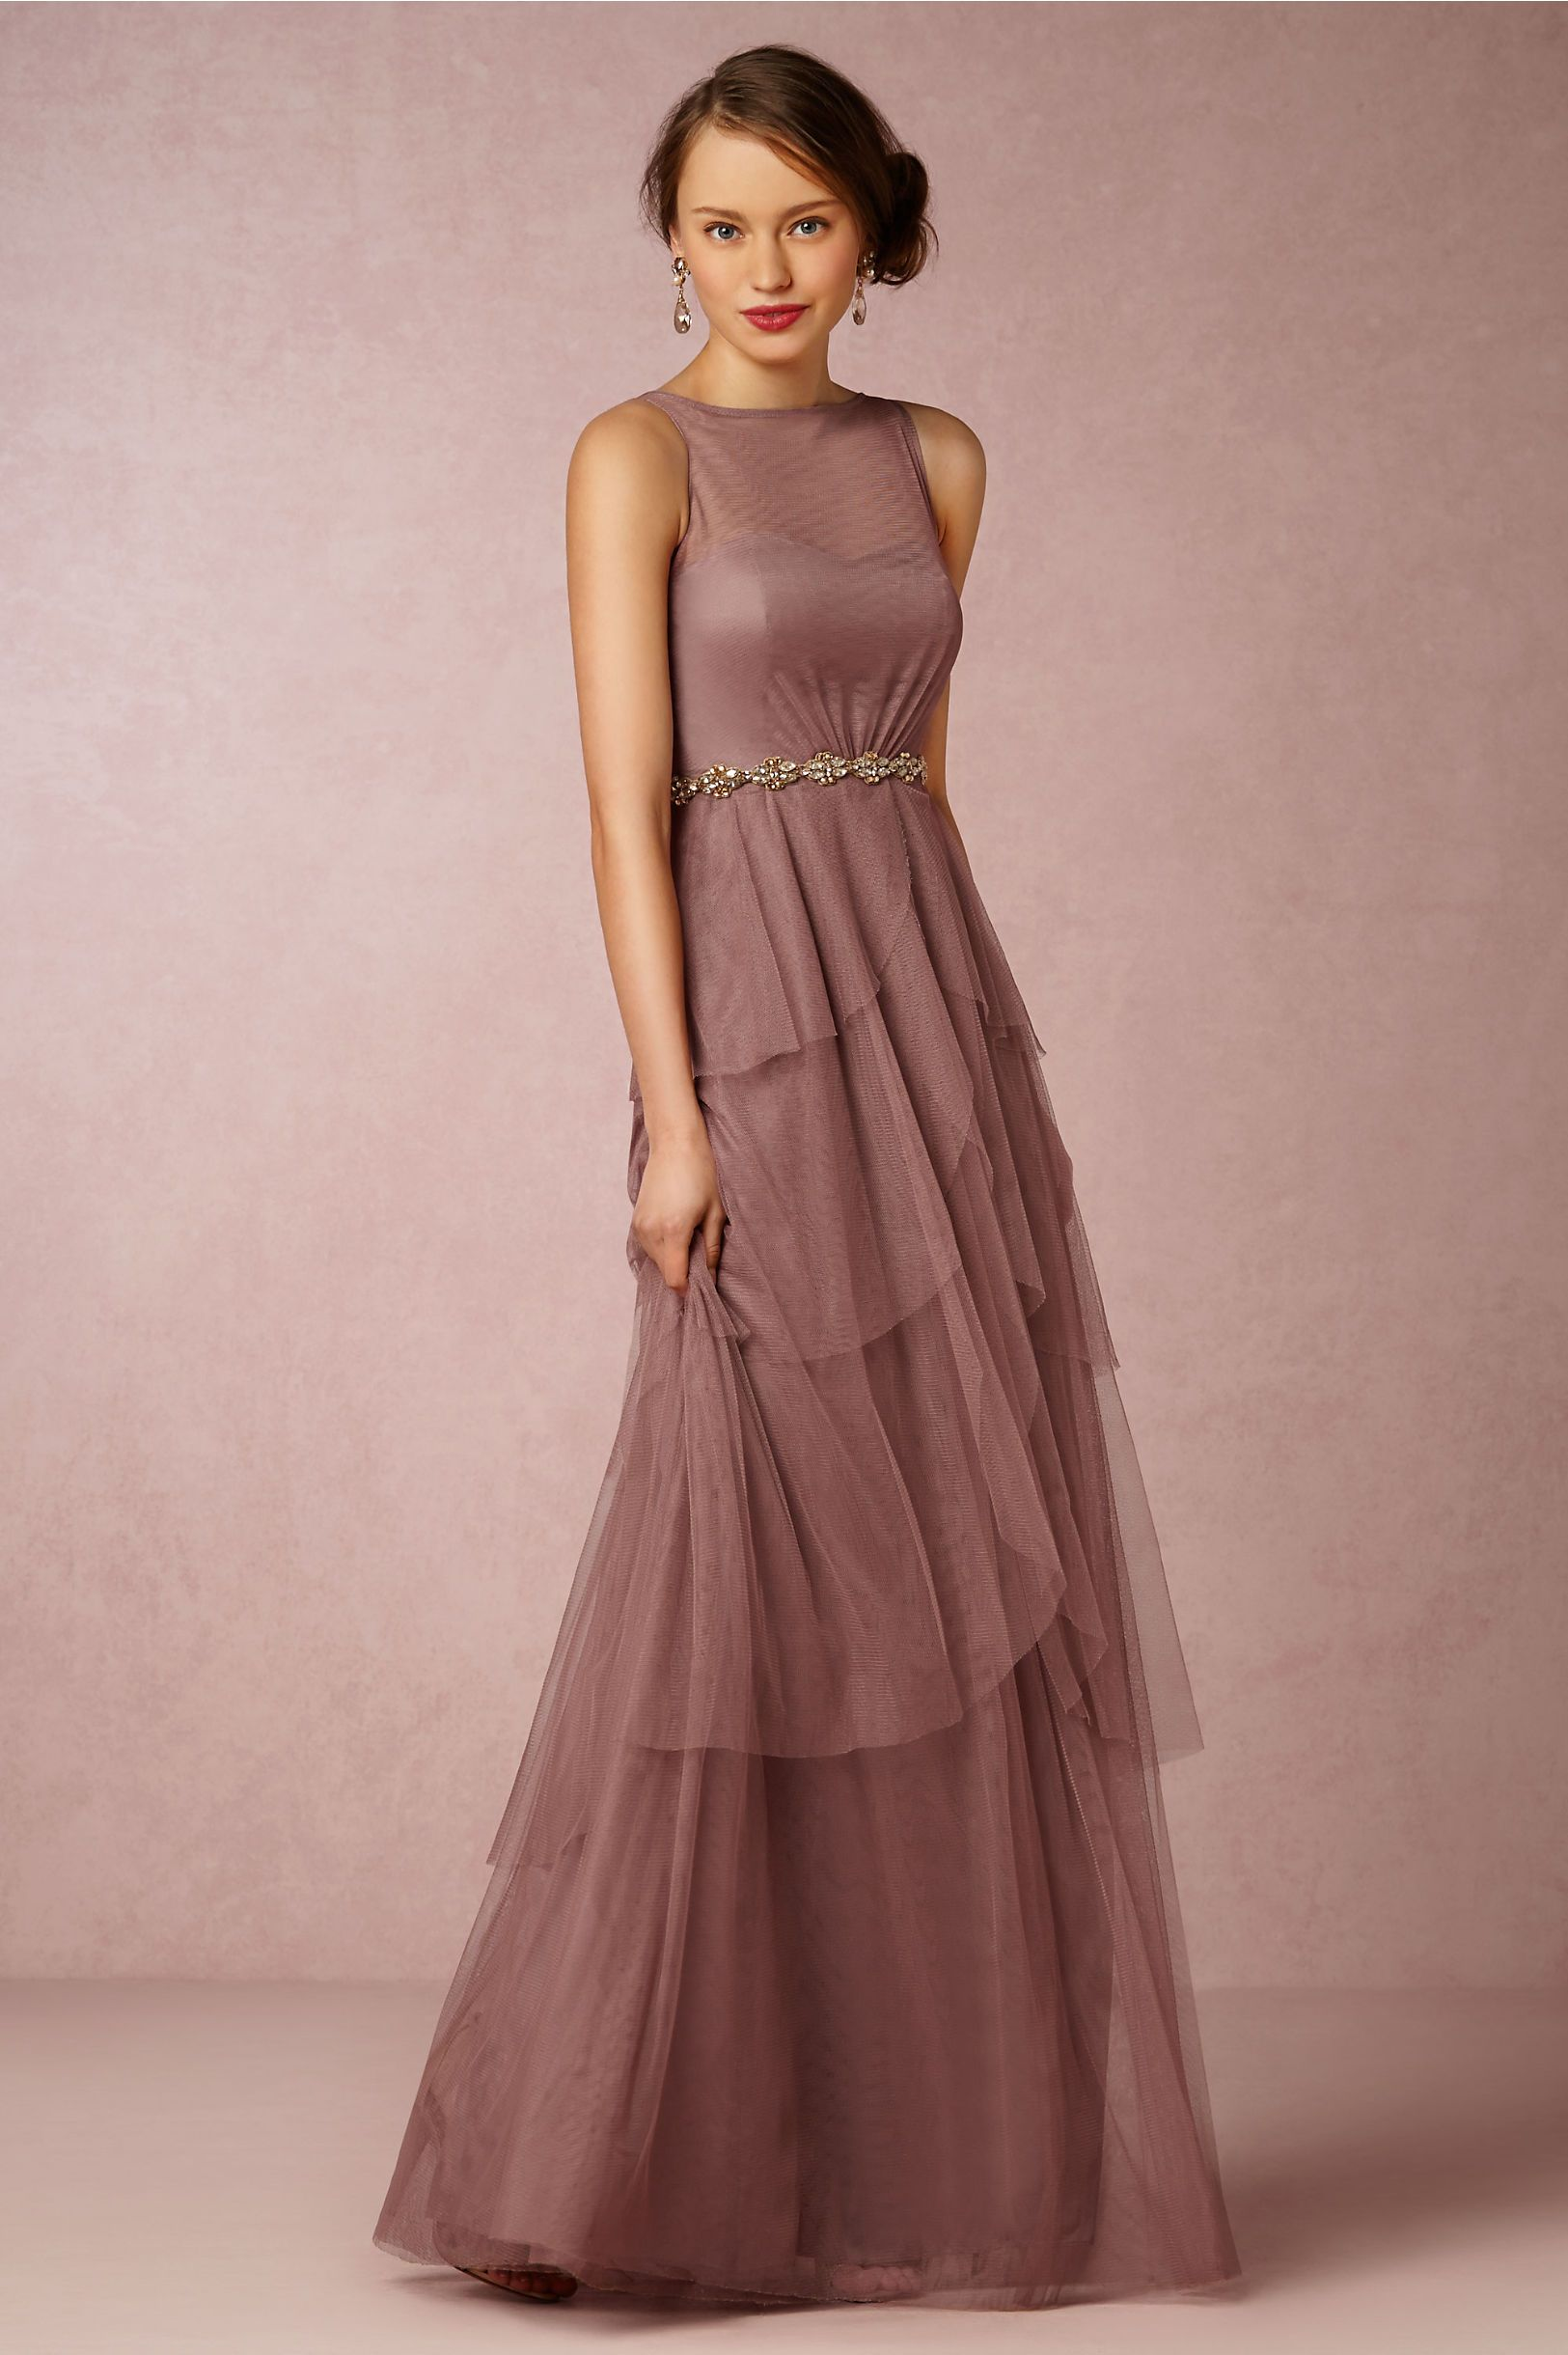 New Donna Morgan Bridesmaid Dresses These beautiful bridesmaid gowns are  from the new Serenity bridesmaid collection 007703e6383a